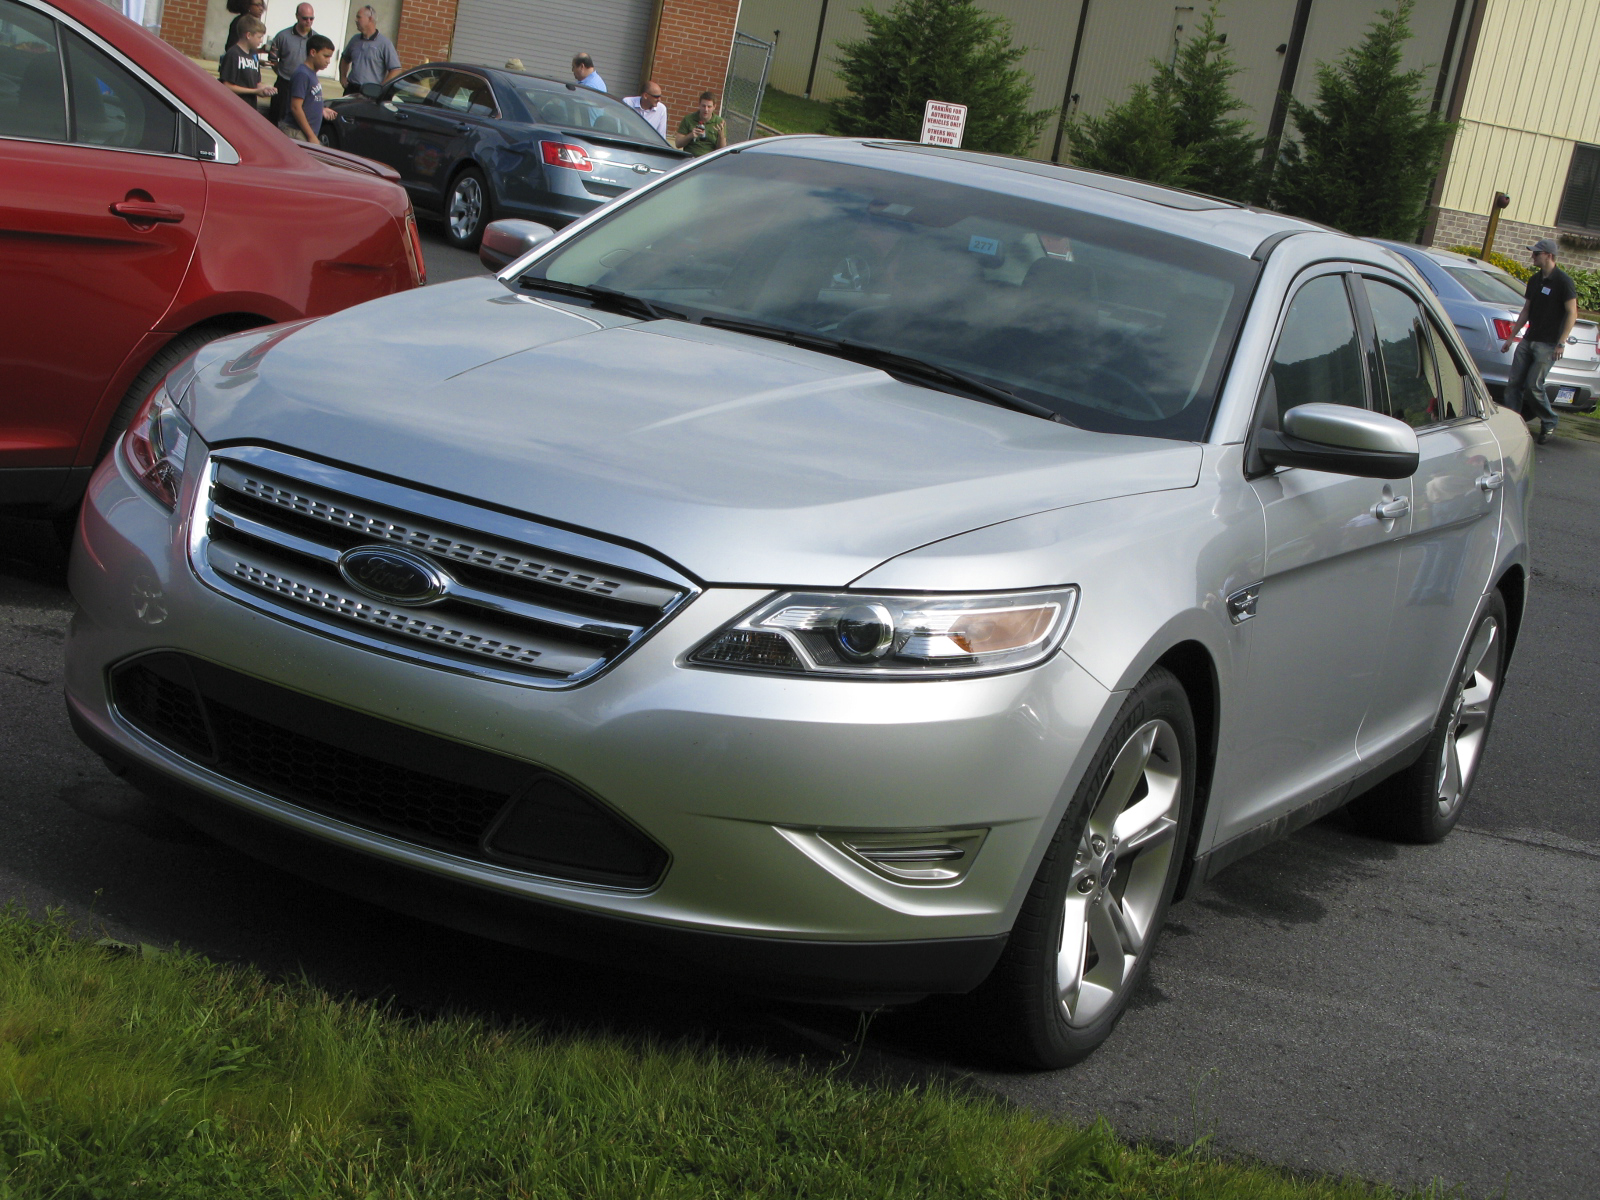 2010 ford taurus sho gallery 306424 top speed. Black Bedroom Furniture Sets. Home Design Ideas